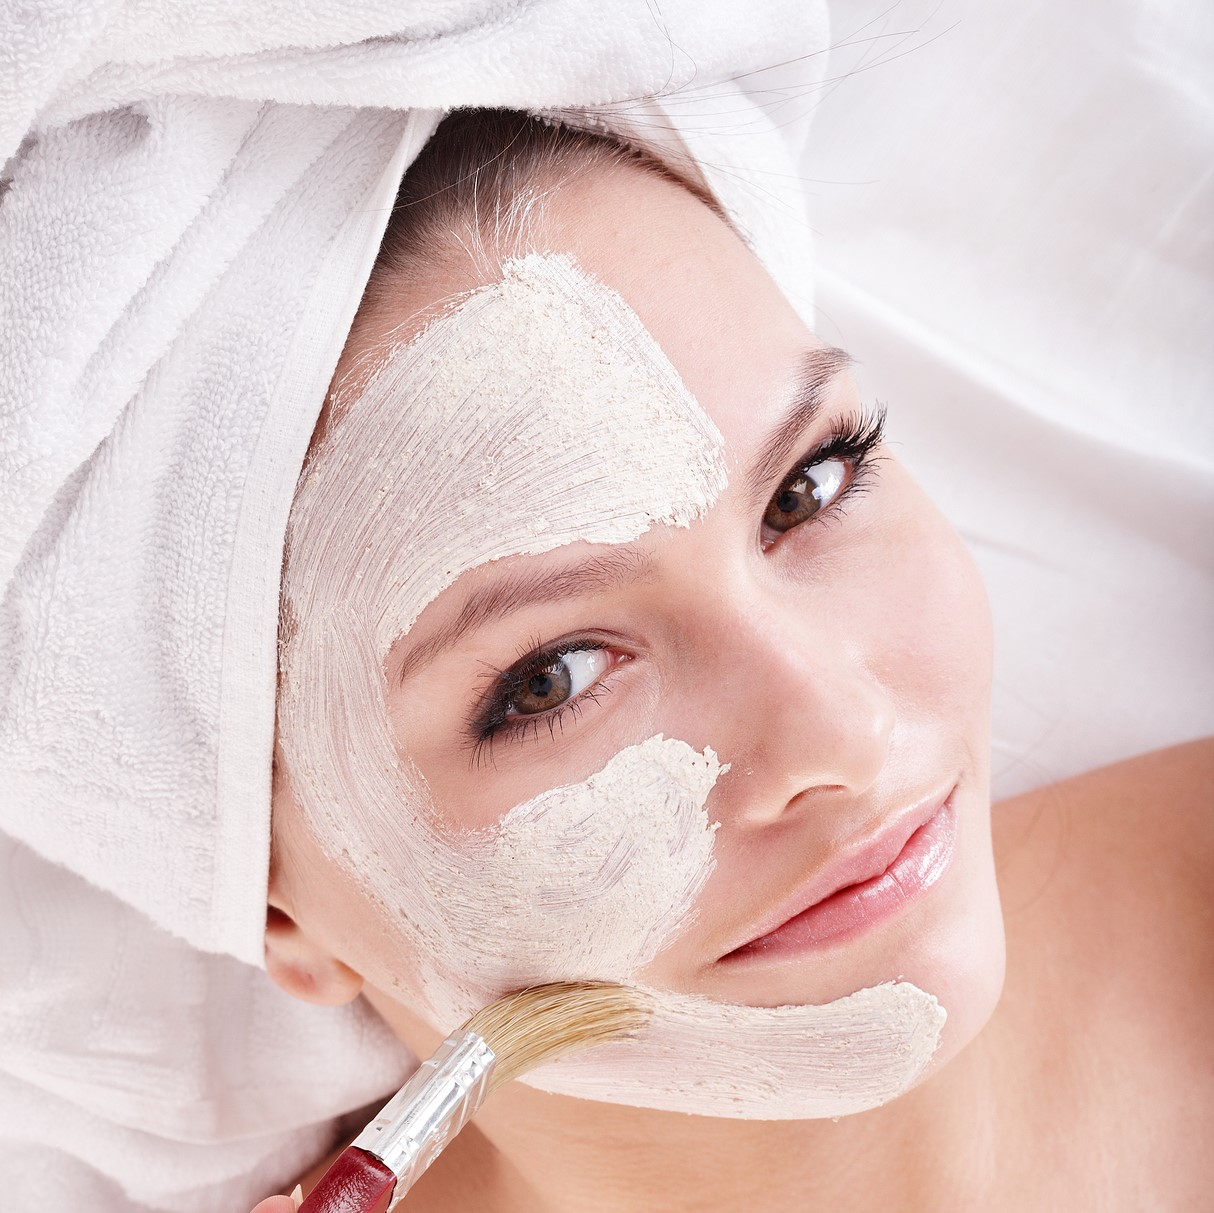 women with face mask 1